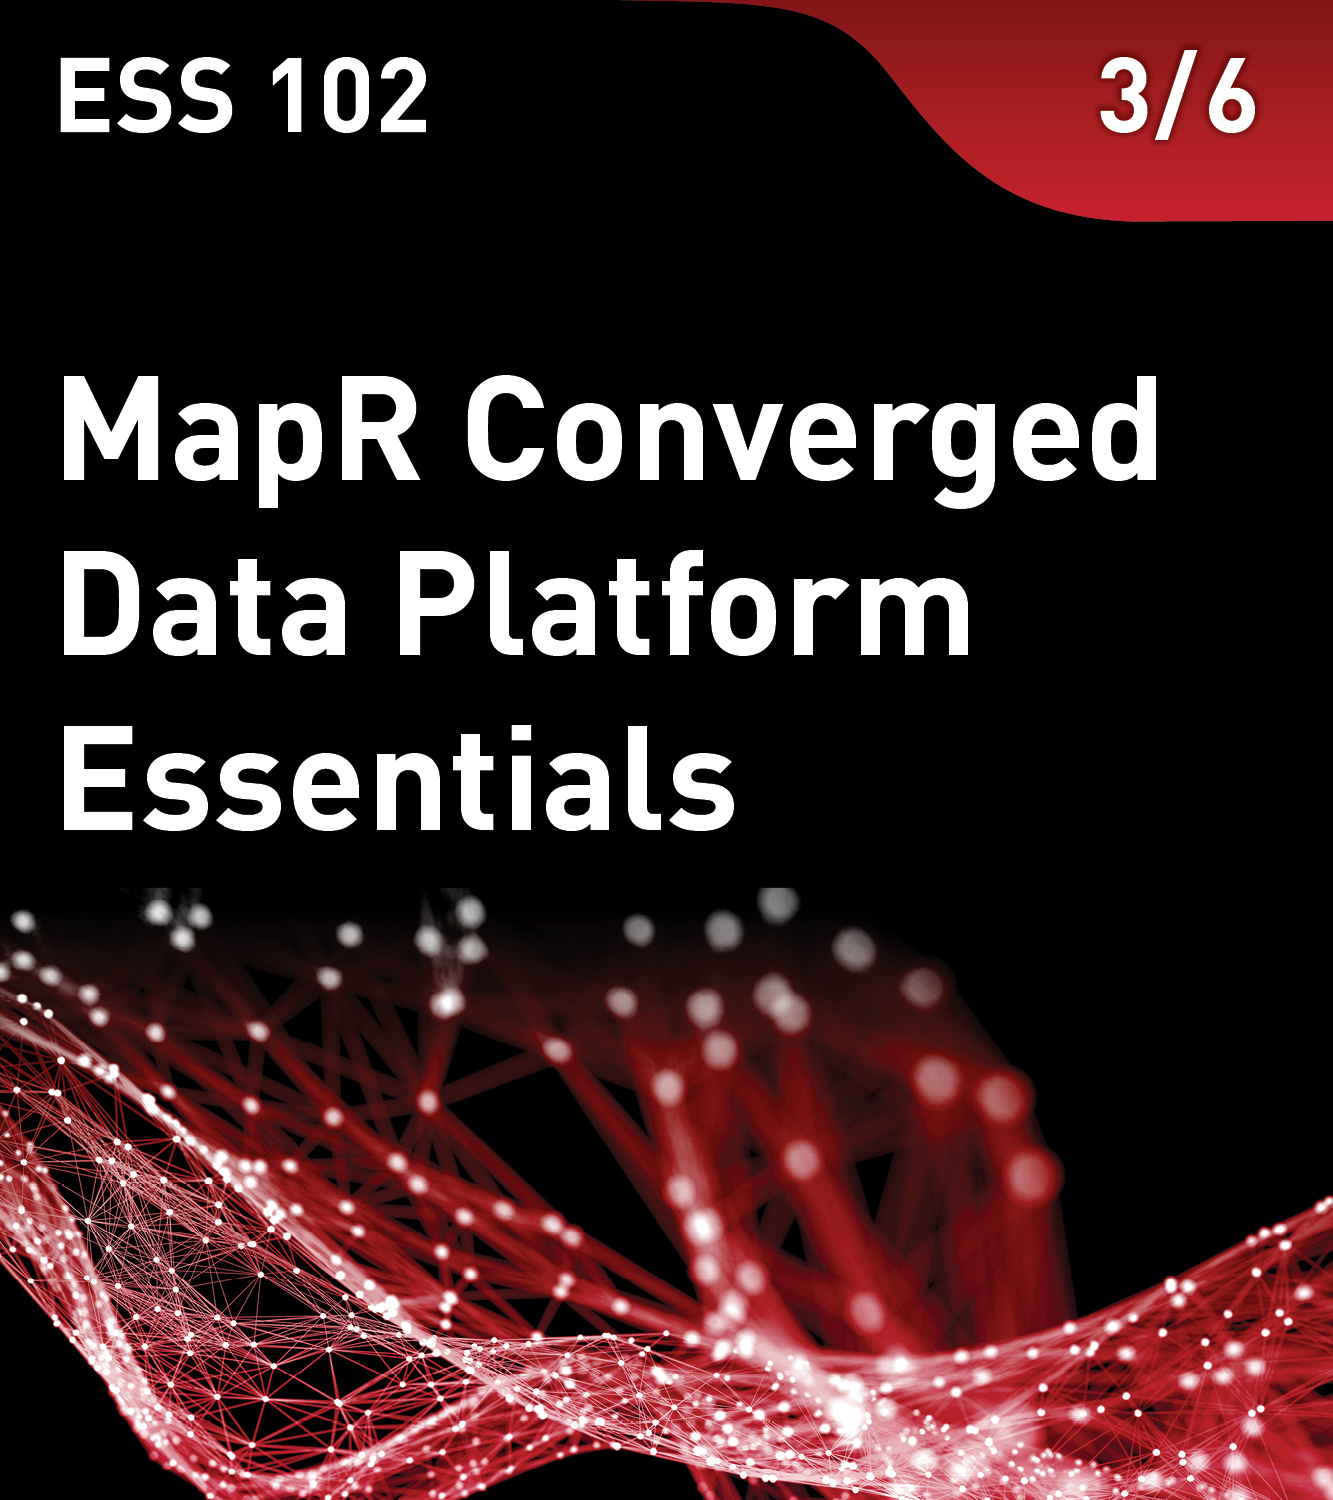 ESS 102 – MapR Converged Data Platform Essentials